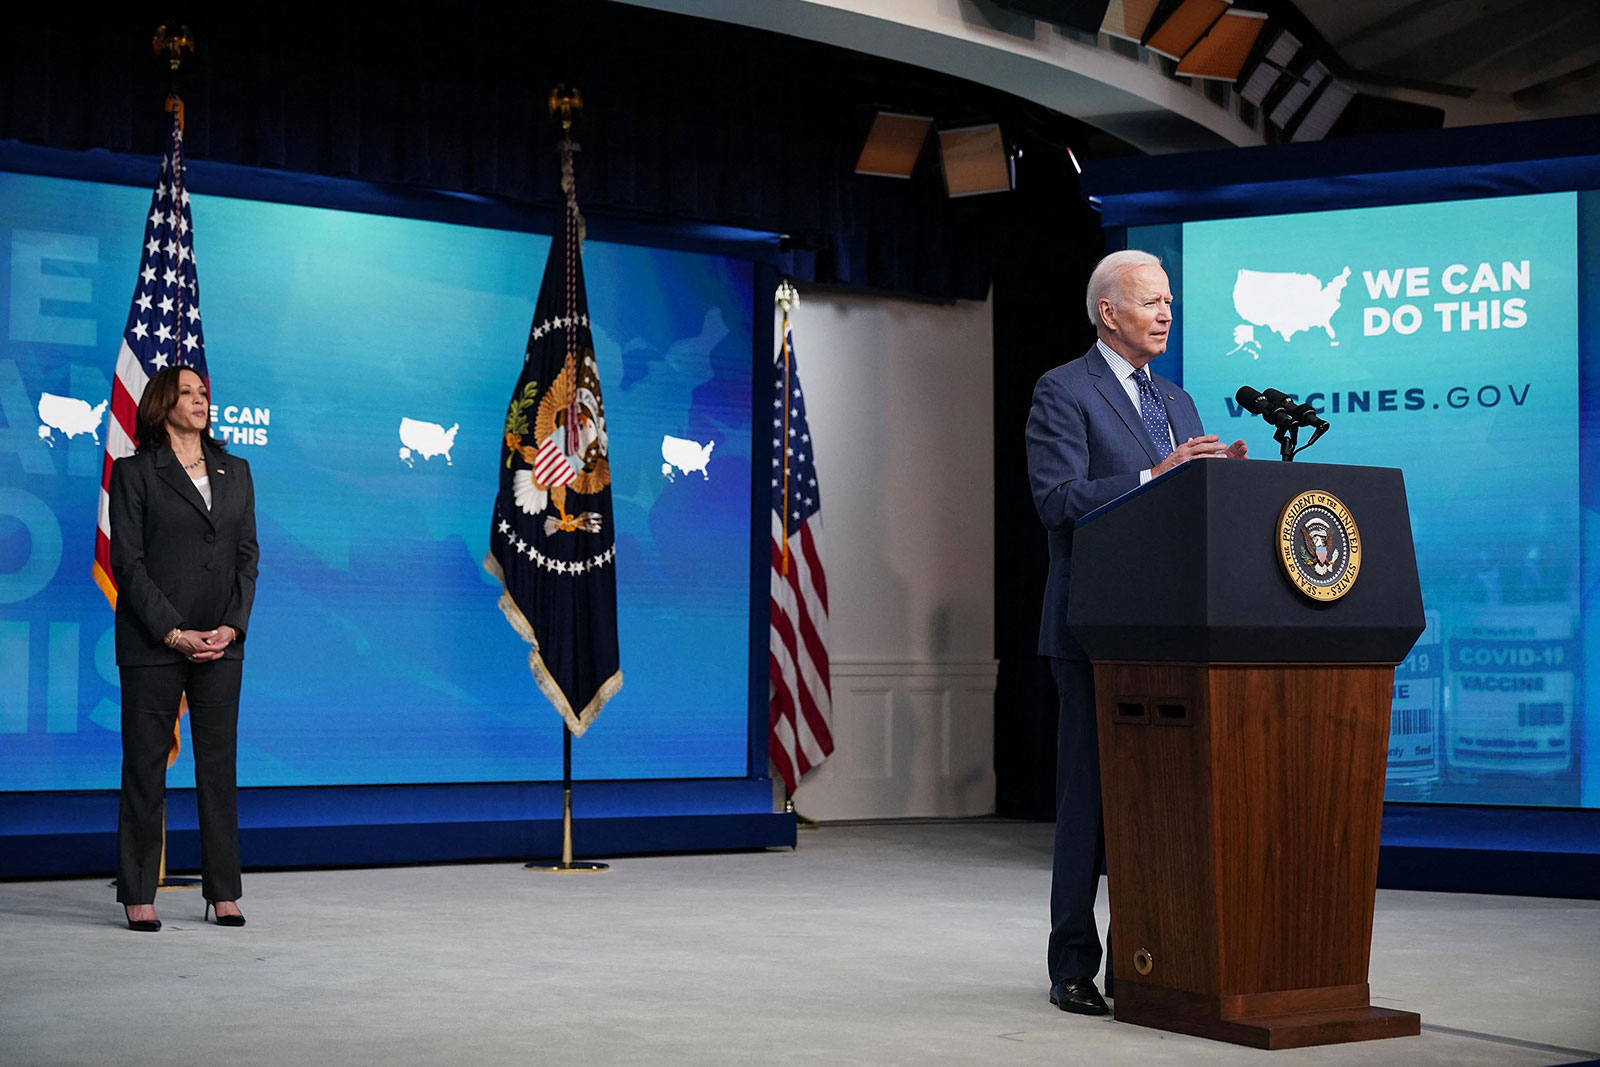 US President Joe Biden, with Vice President Kamala Harris, speaks on Covid-19 response and vaccinations in the South Court Auditorium of the Eisenhower Executive Office Building, next to the White House, in Washington, DC, on June 2.